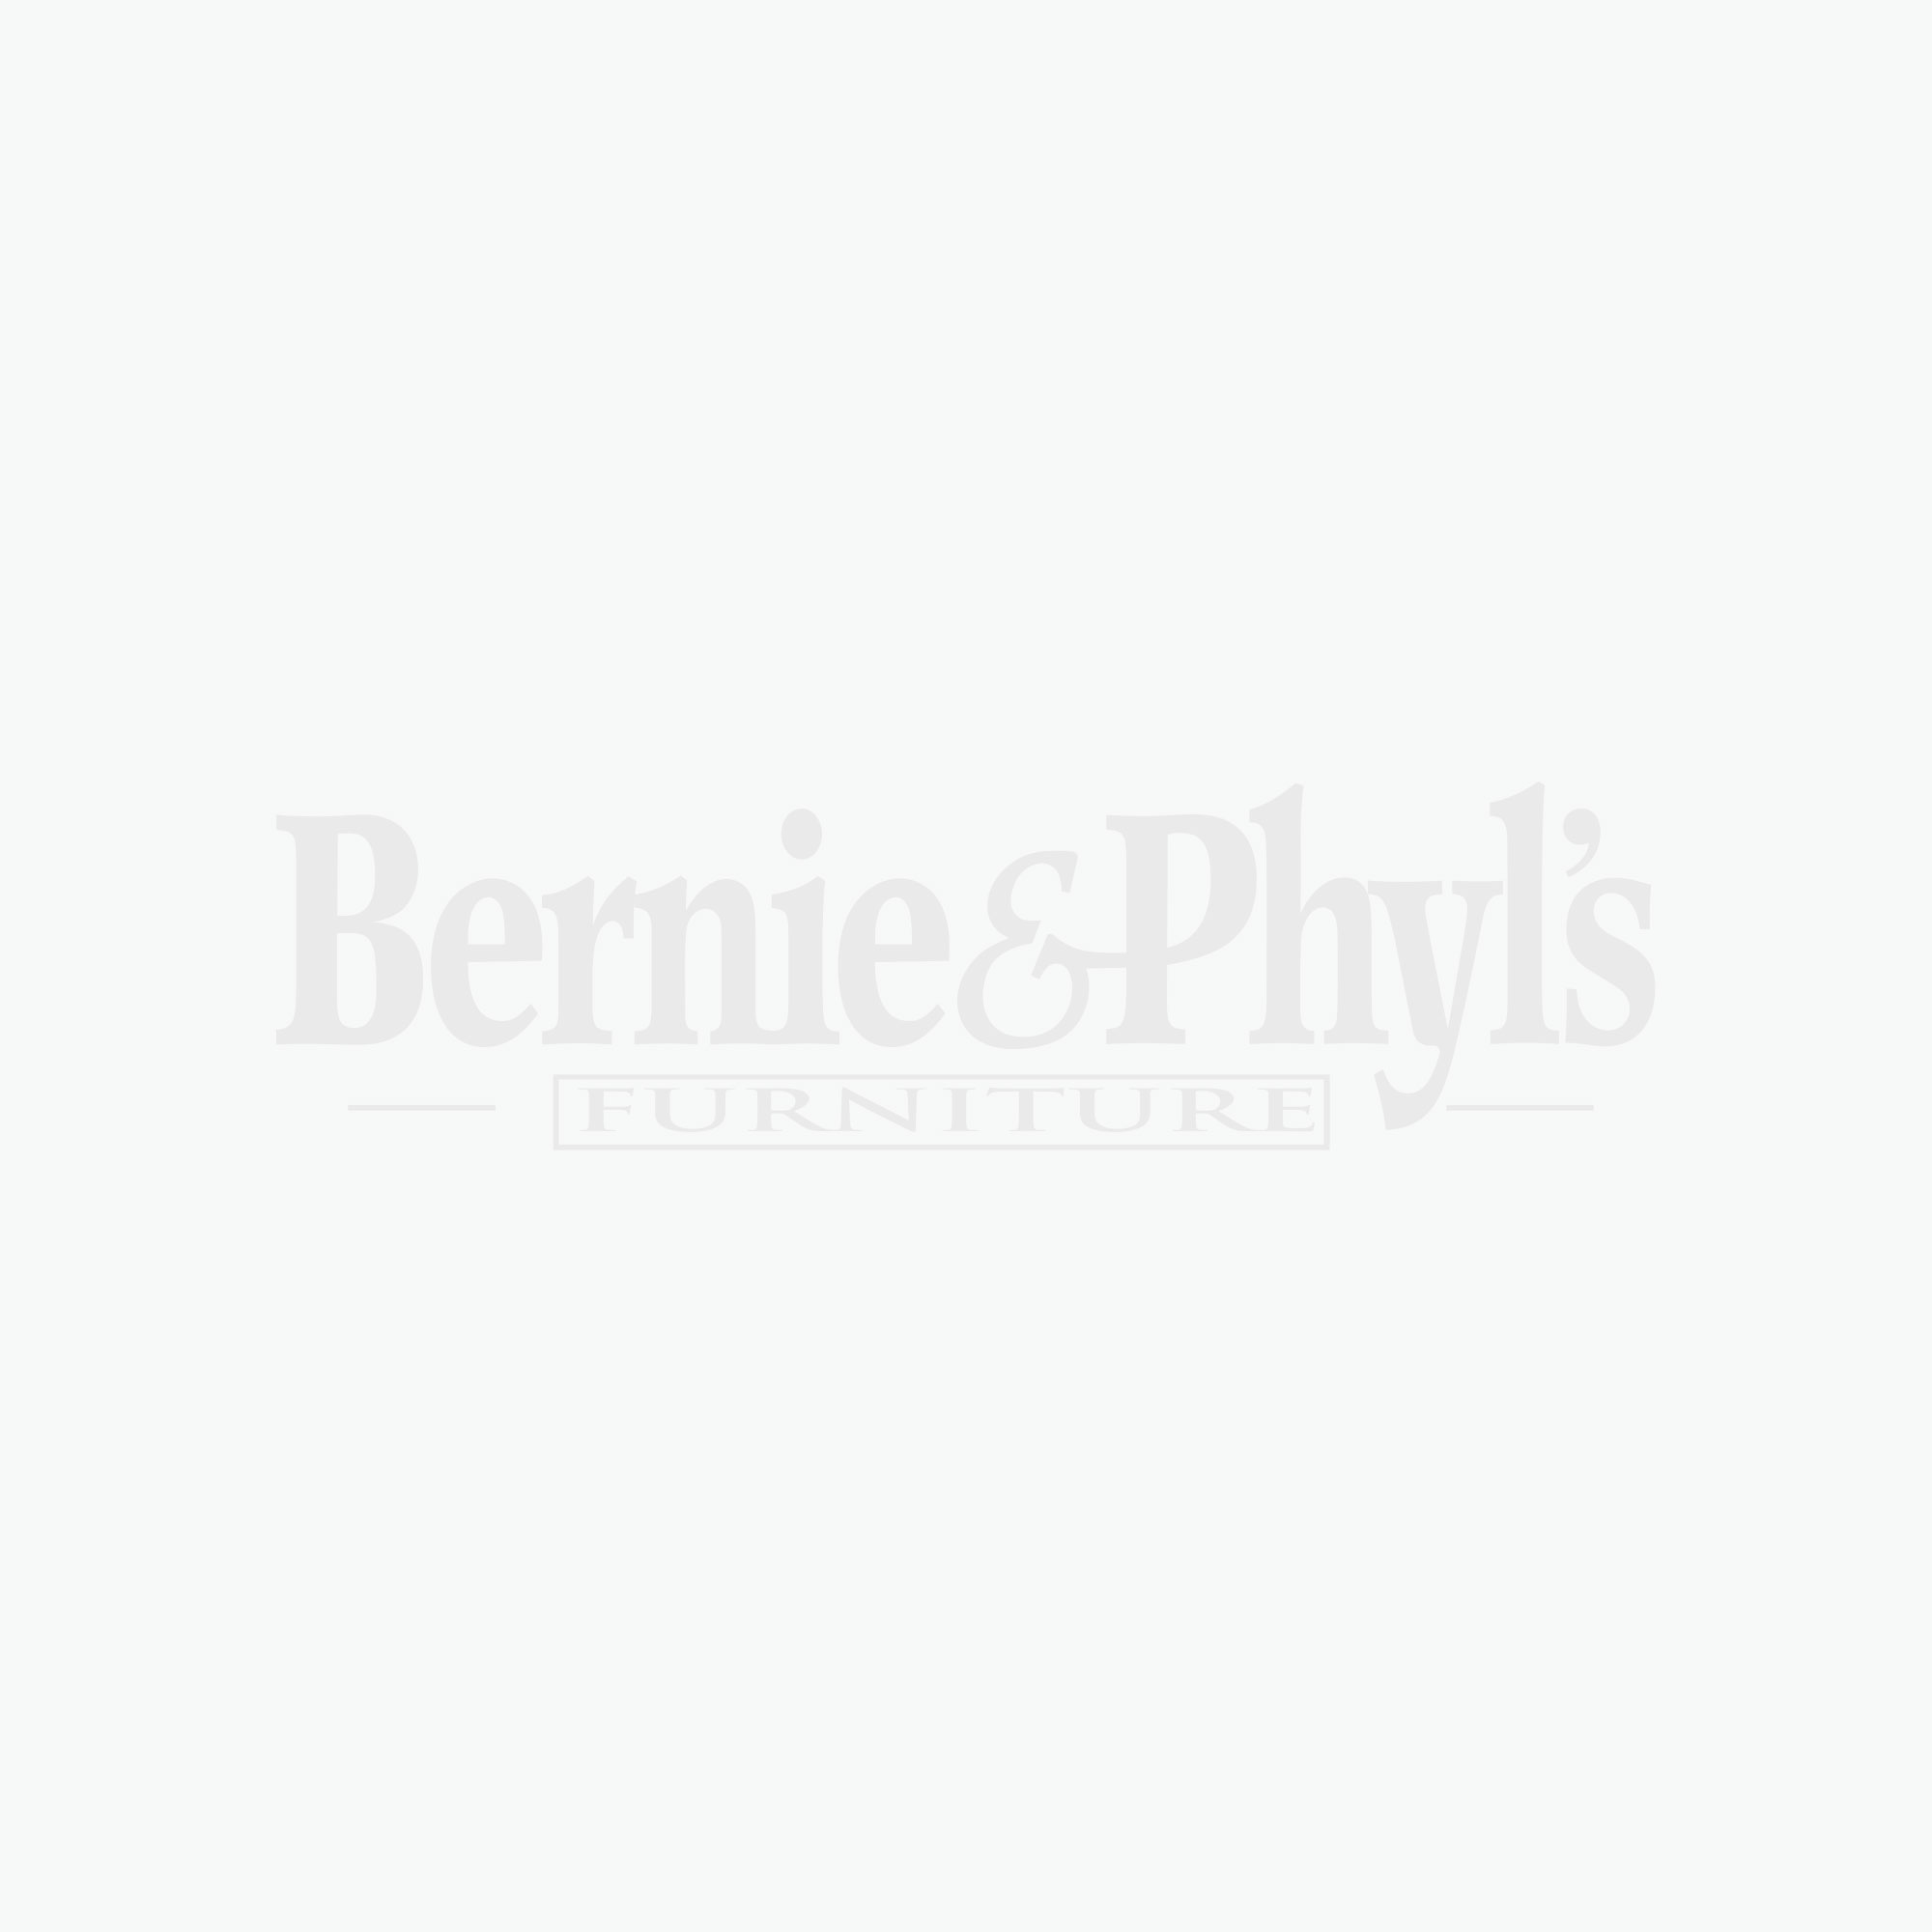 cheerio bordeaux loveseat bernie phyl s furniture by violino furniture cheerio bordeaux loveseat bernie